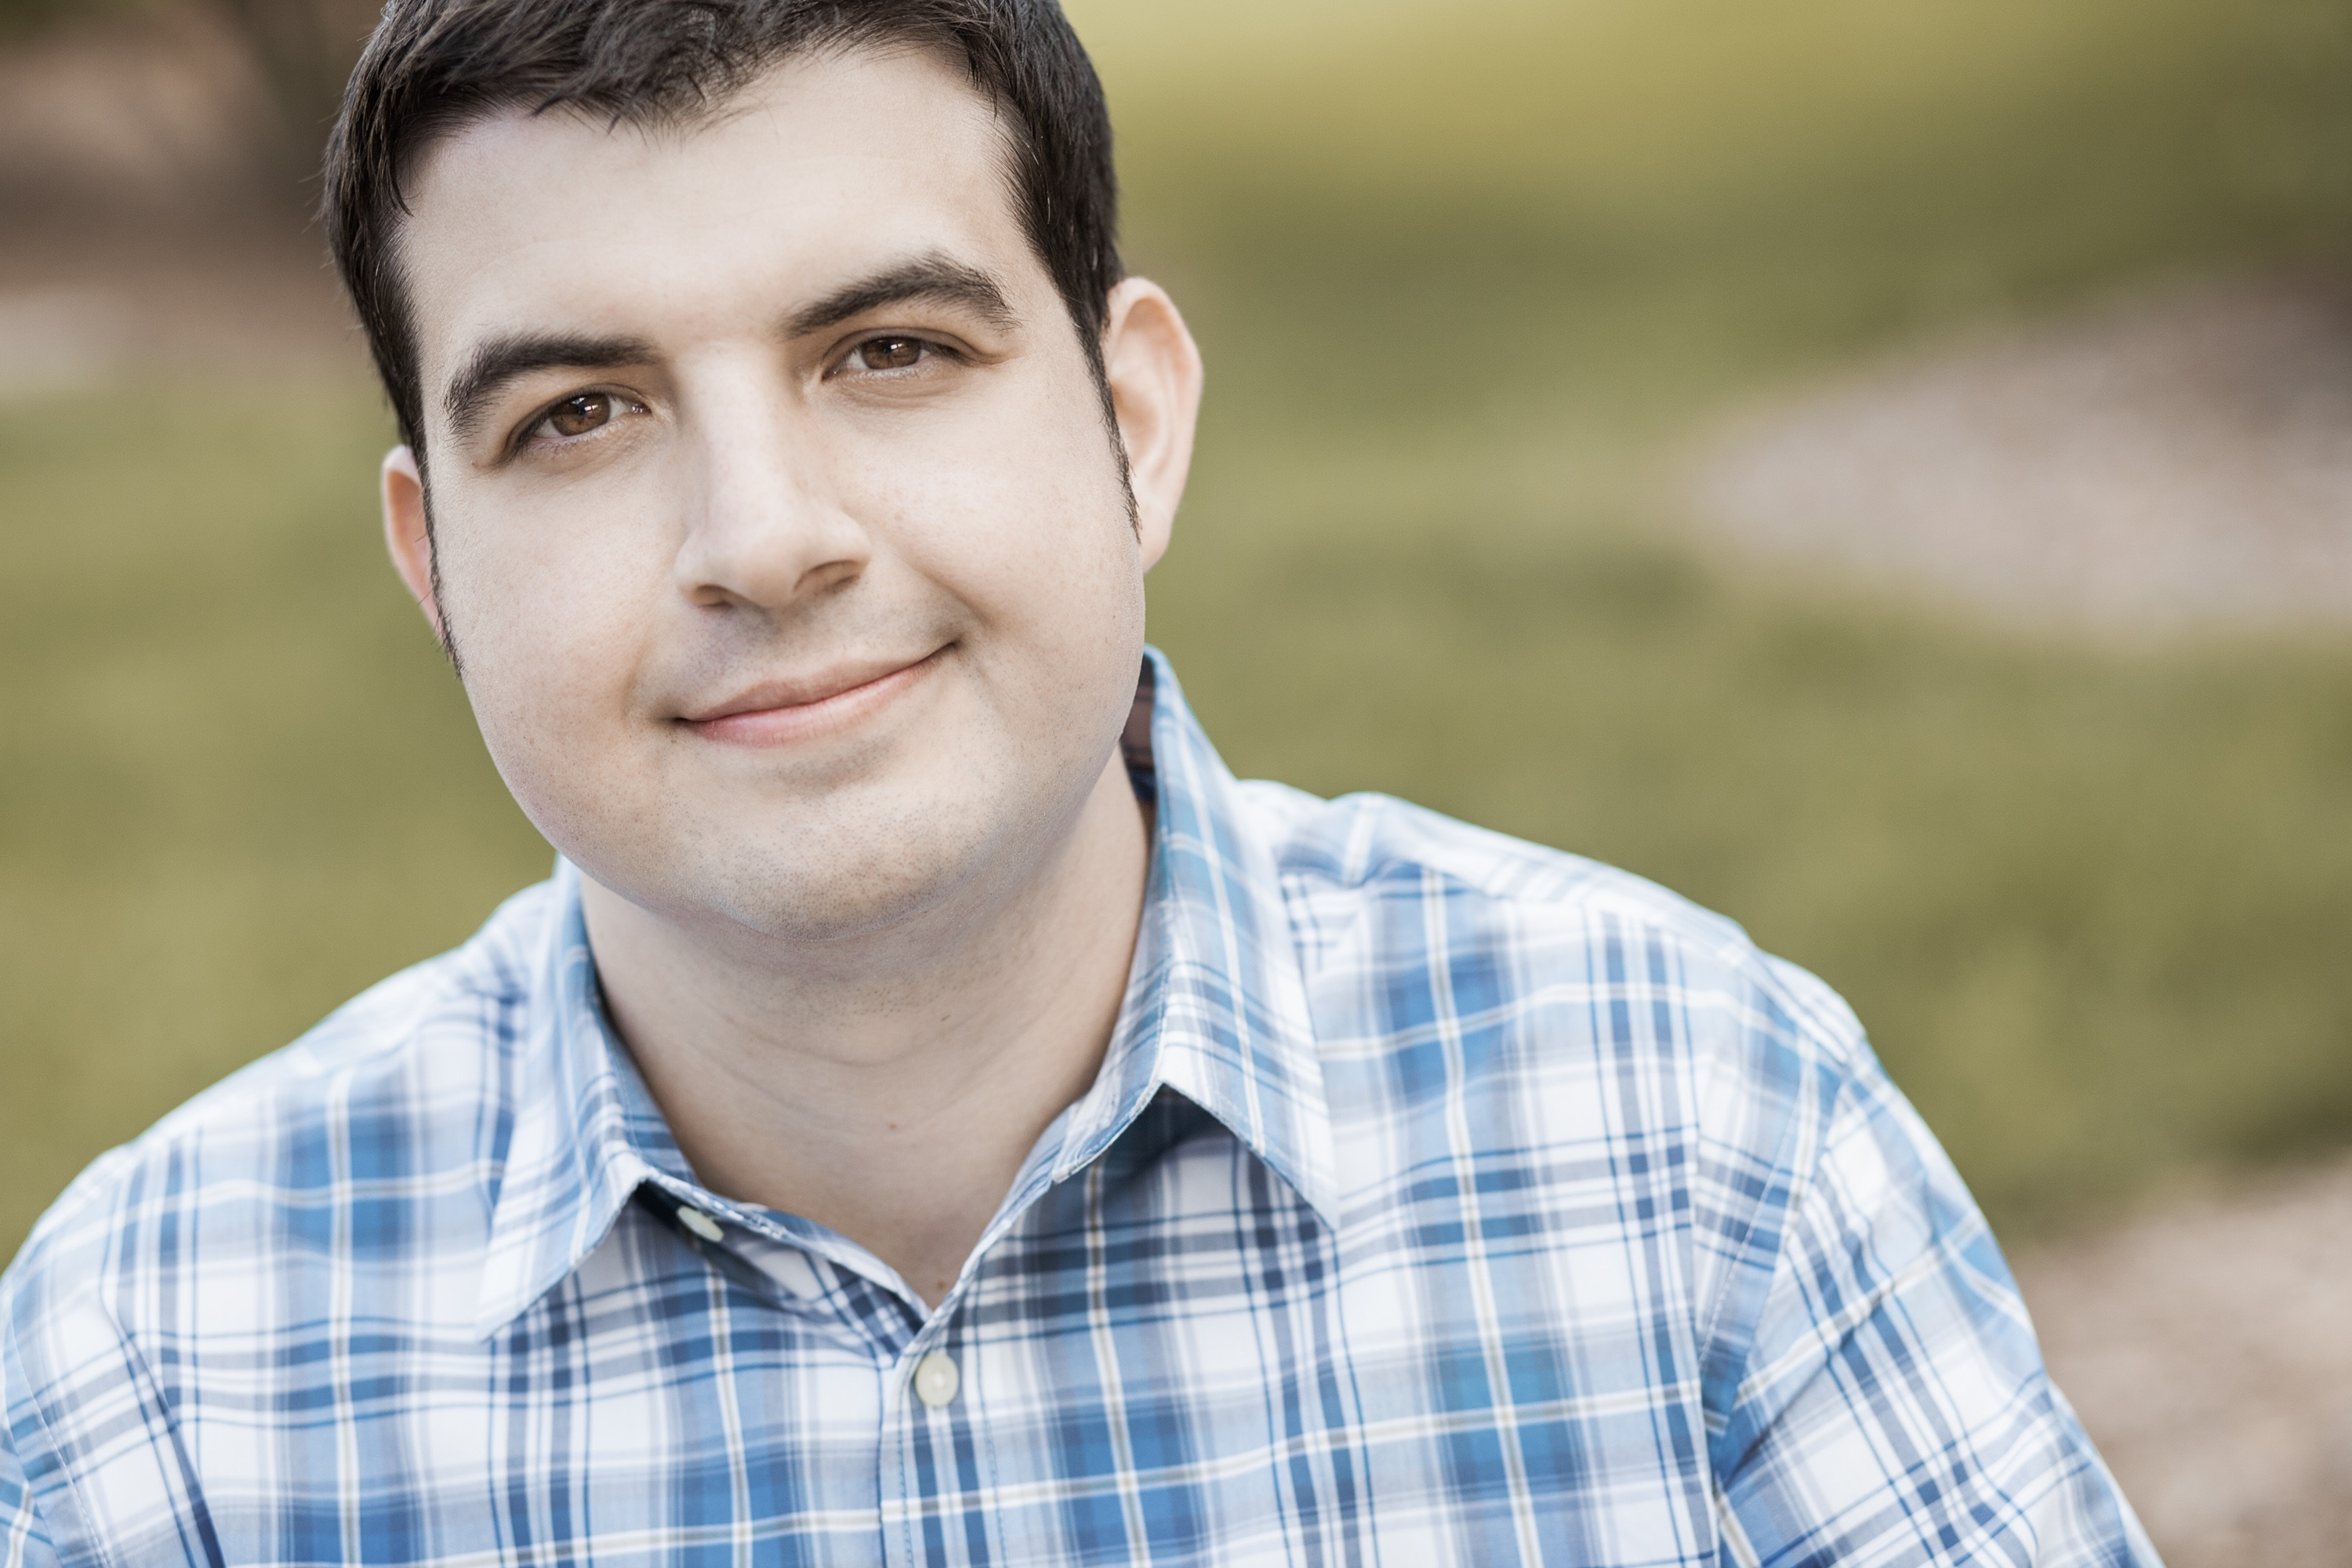 Visconti appointed Composer-in-Residence at the California Symphony for 2014-2017 and Composer-in-Residence at the Arkansas Symphony for 2015-16